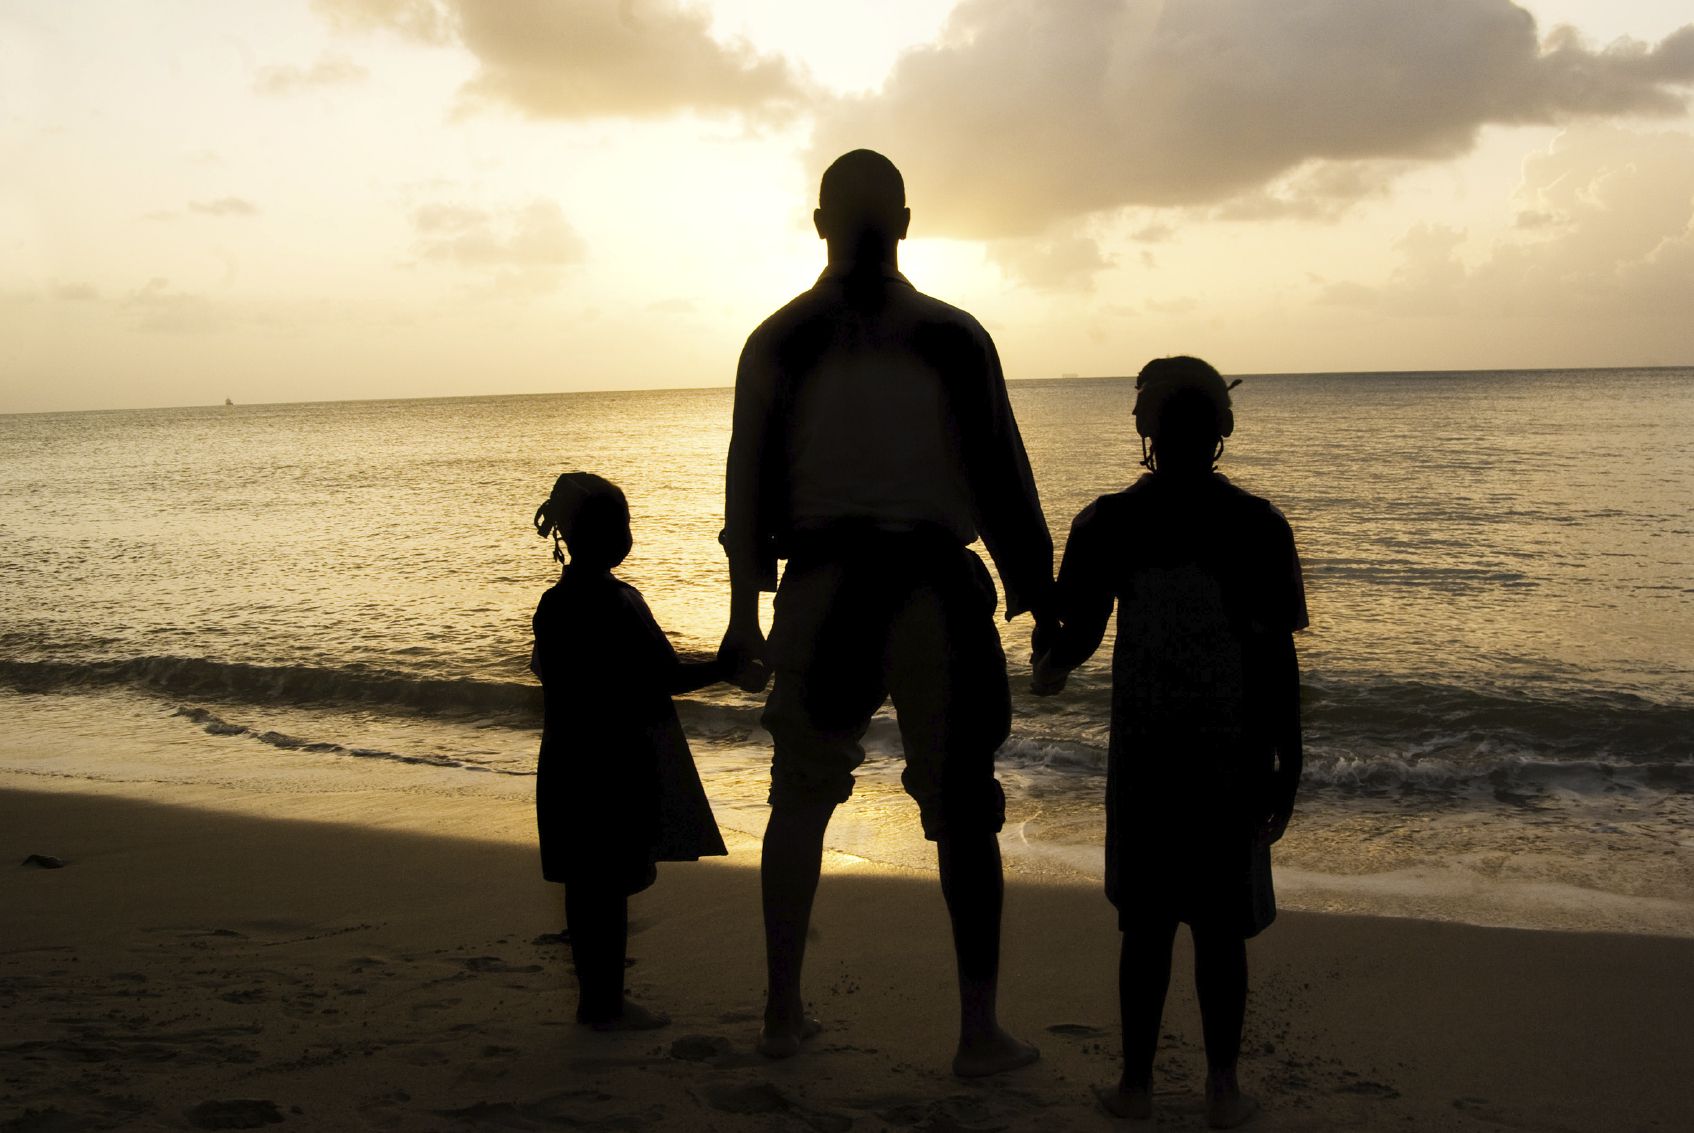 father and children silhouette at beach